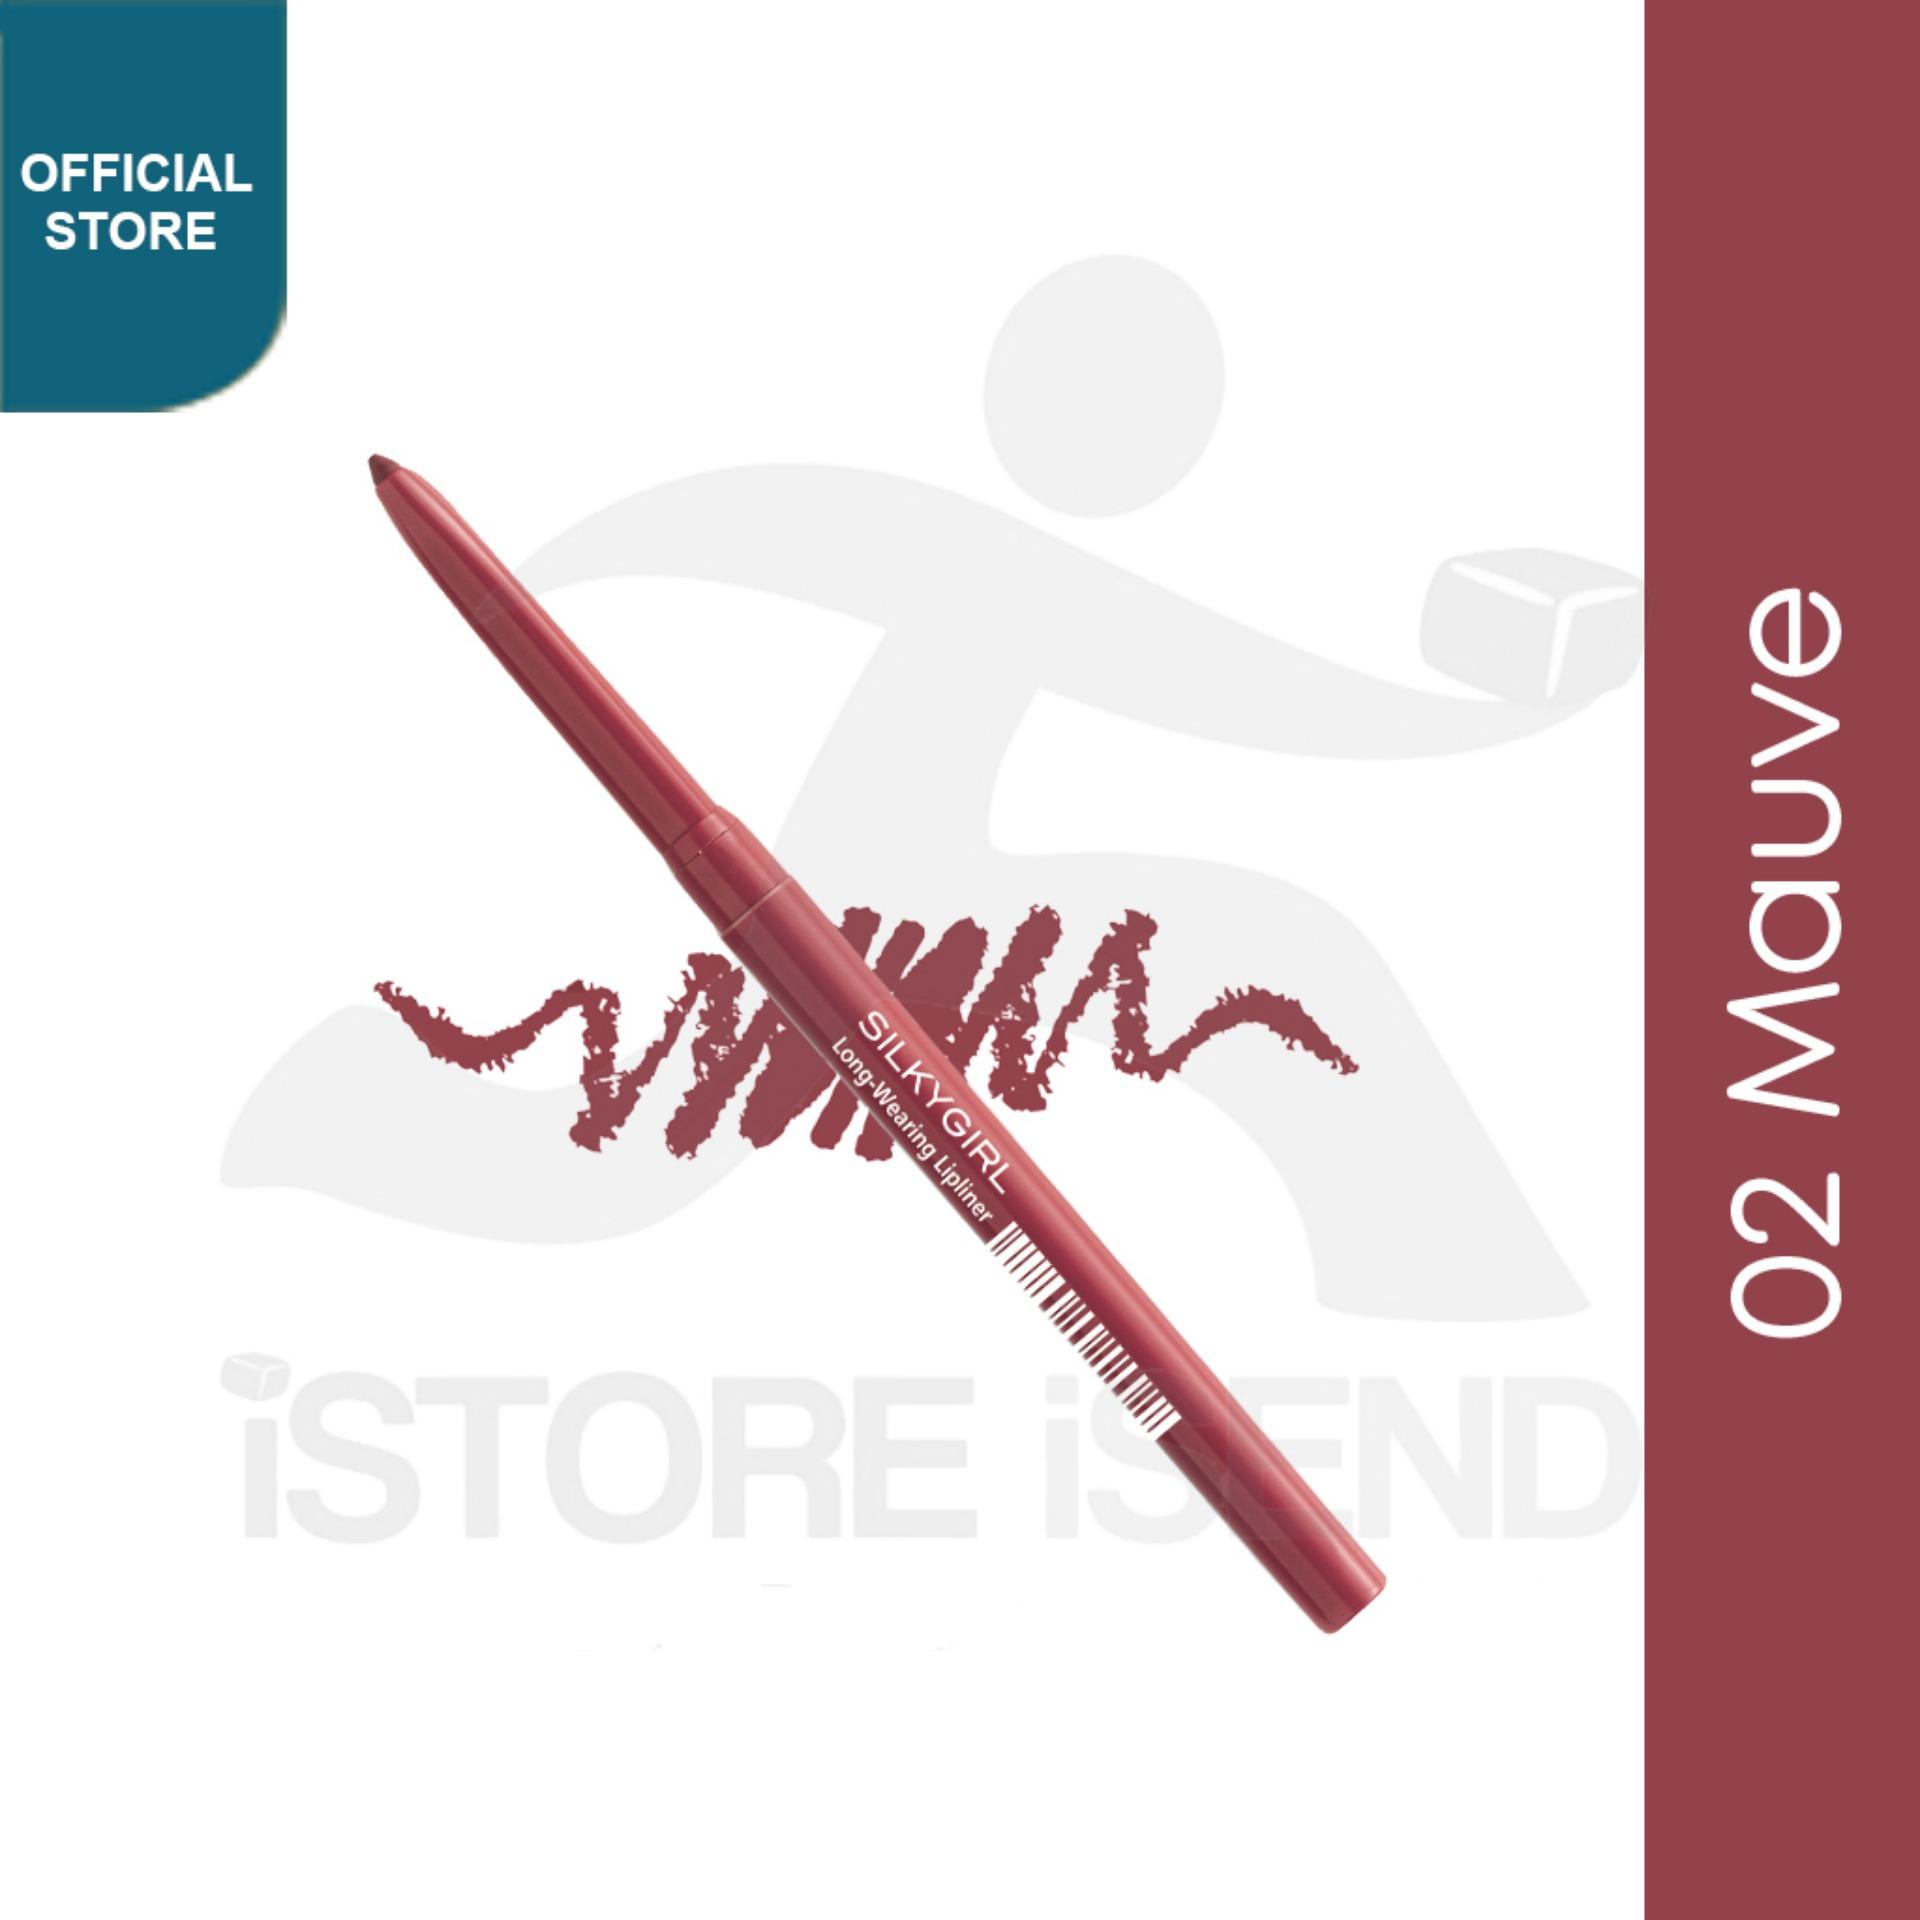 Silkygirl Long Wearing Lipliner - 02 Mauve (gl0004-02) By Silkygirl Official Store.